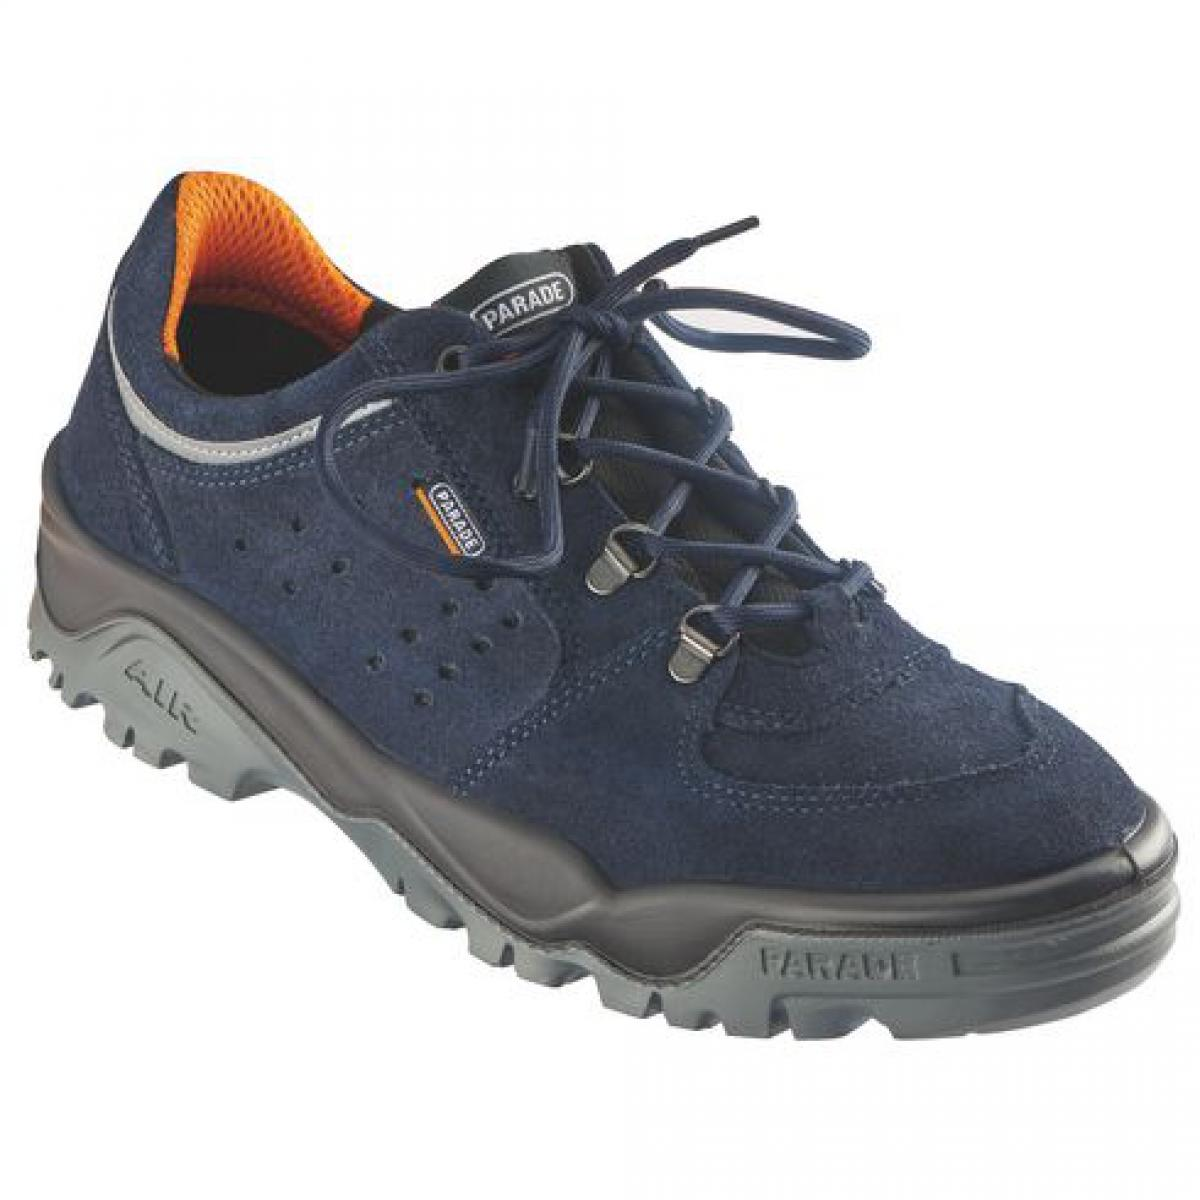 Parade Chaussure Doxo taille 45